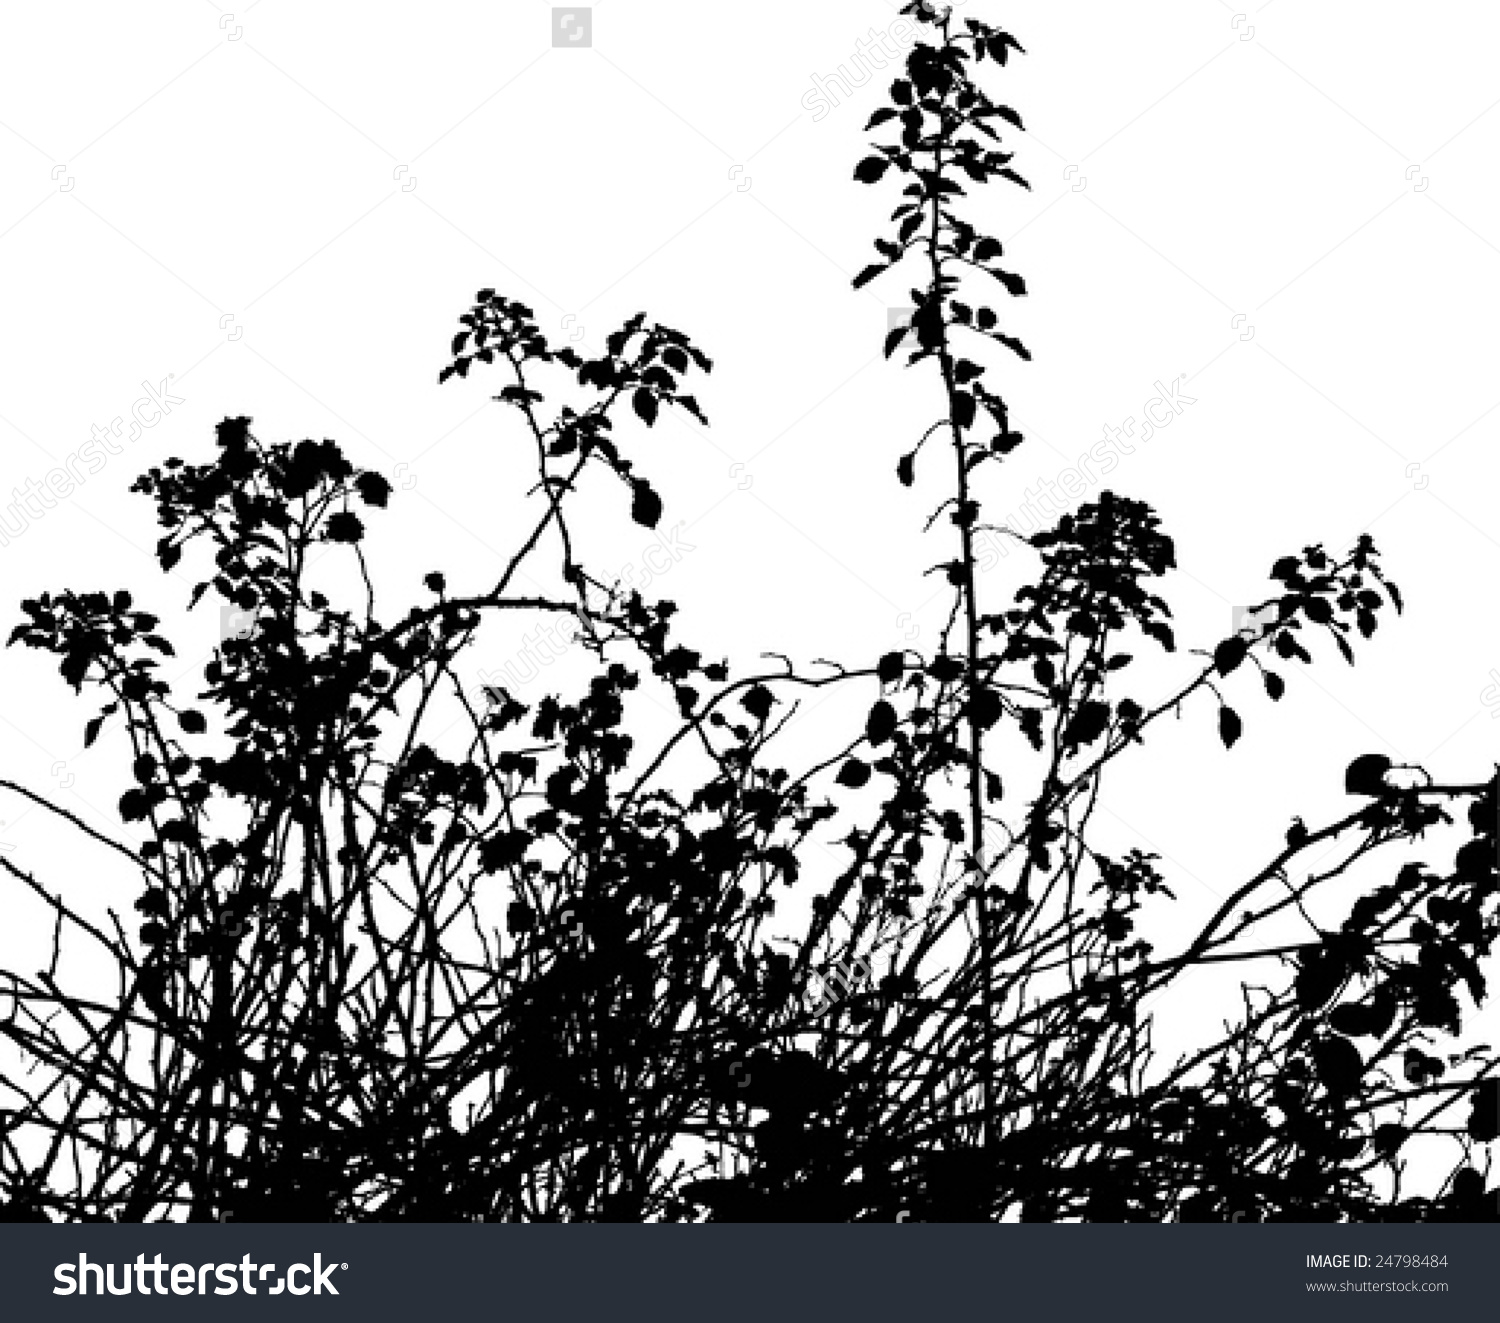 Bramble thorns silhouette clipart.